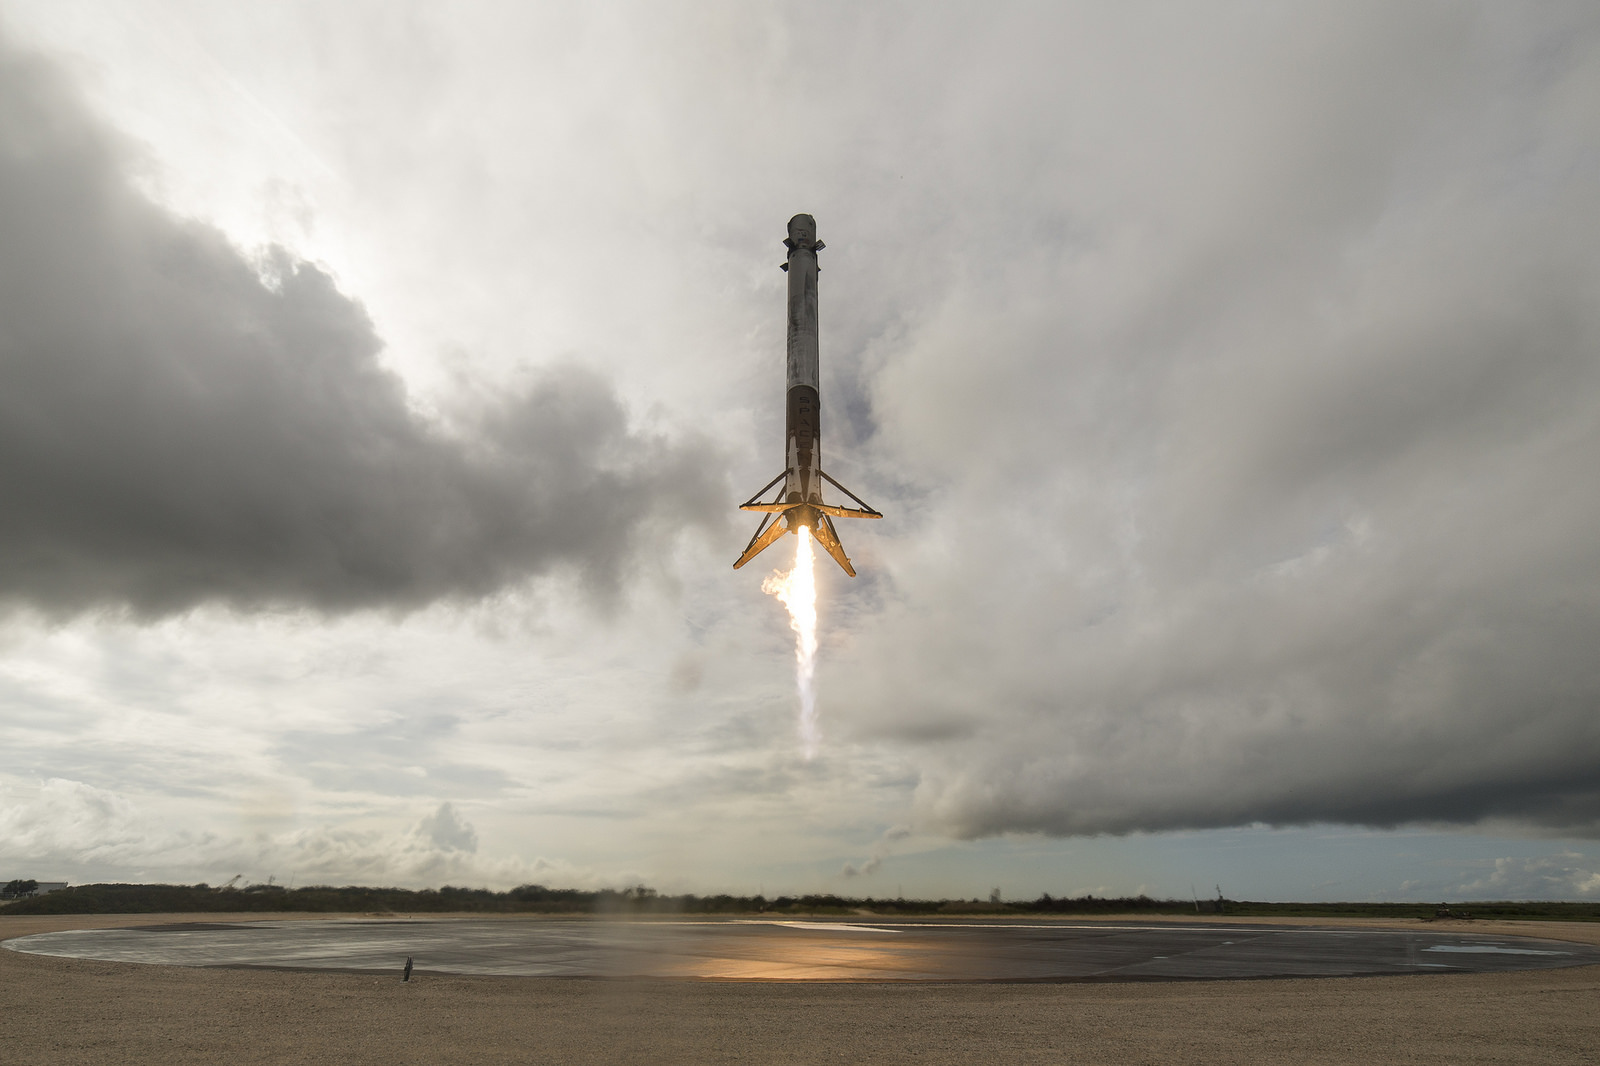 The Falcon 9 (CRS-11 Dragon mission) first stage returning to Earth